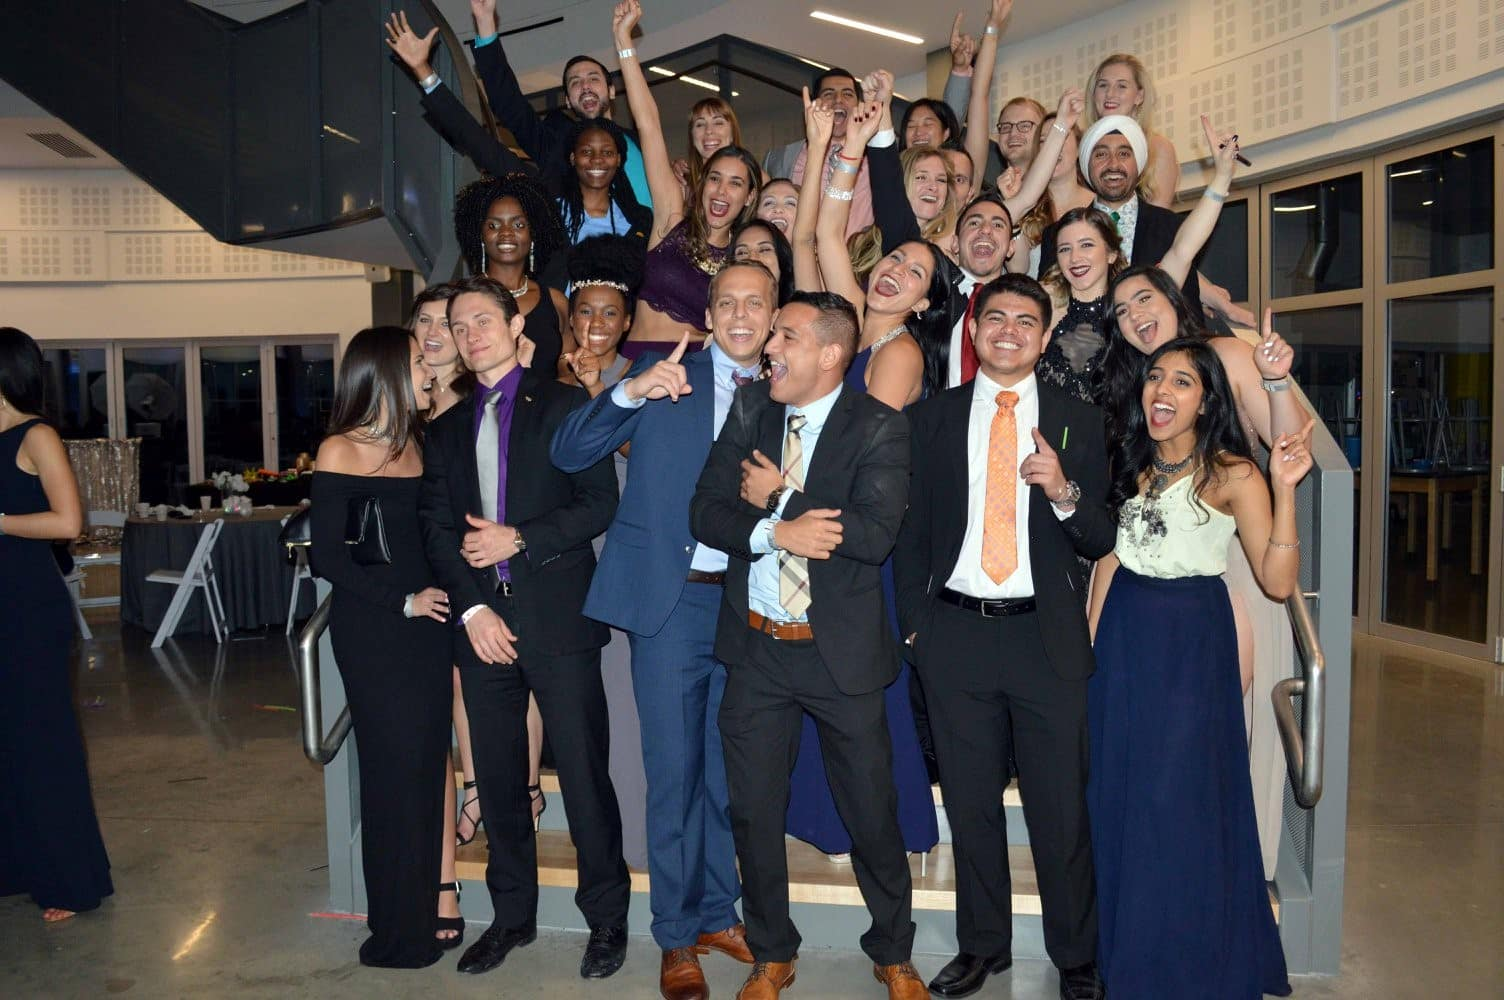 River Oak Dental Students celebrating with hands in the air and smiles all around.